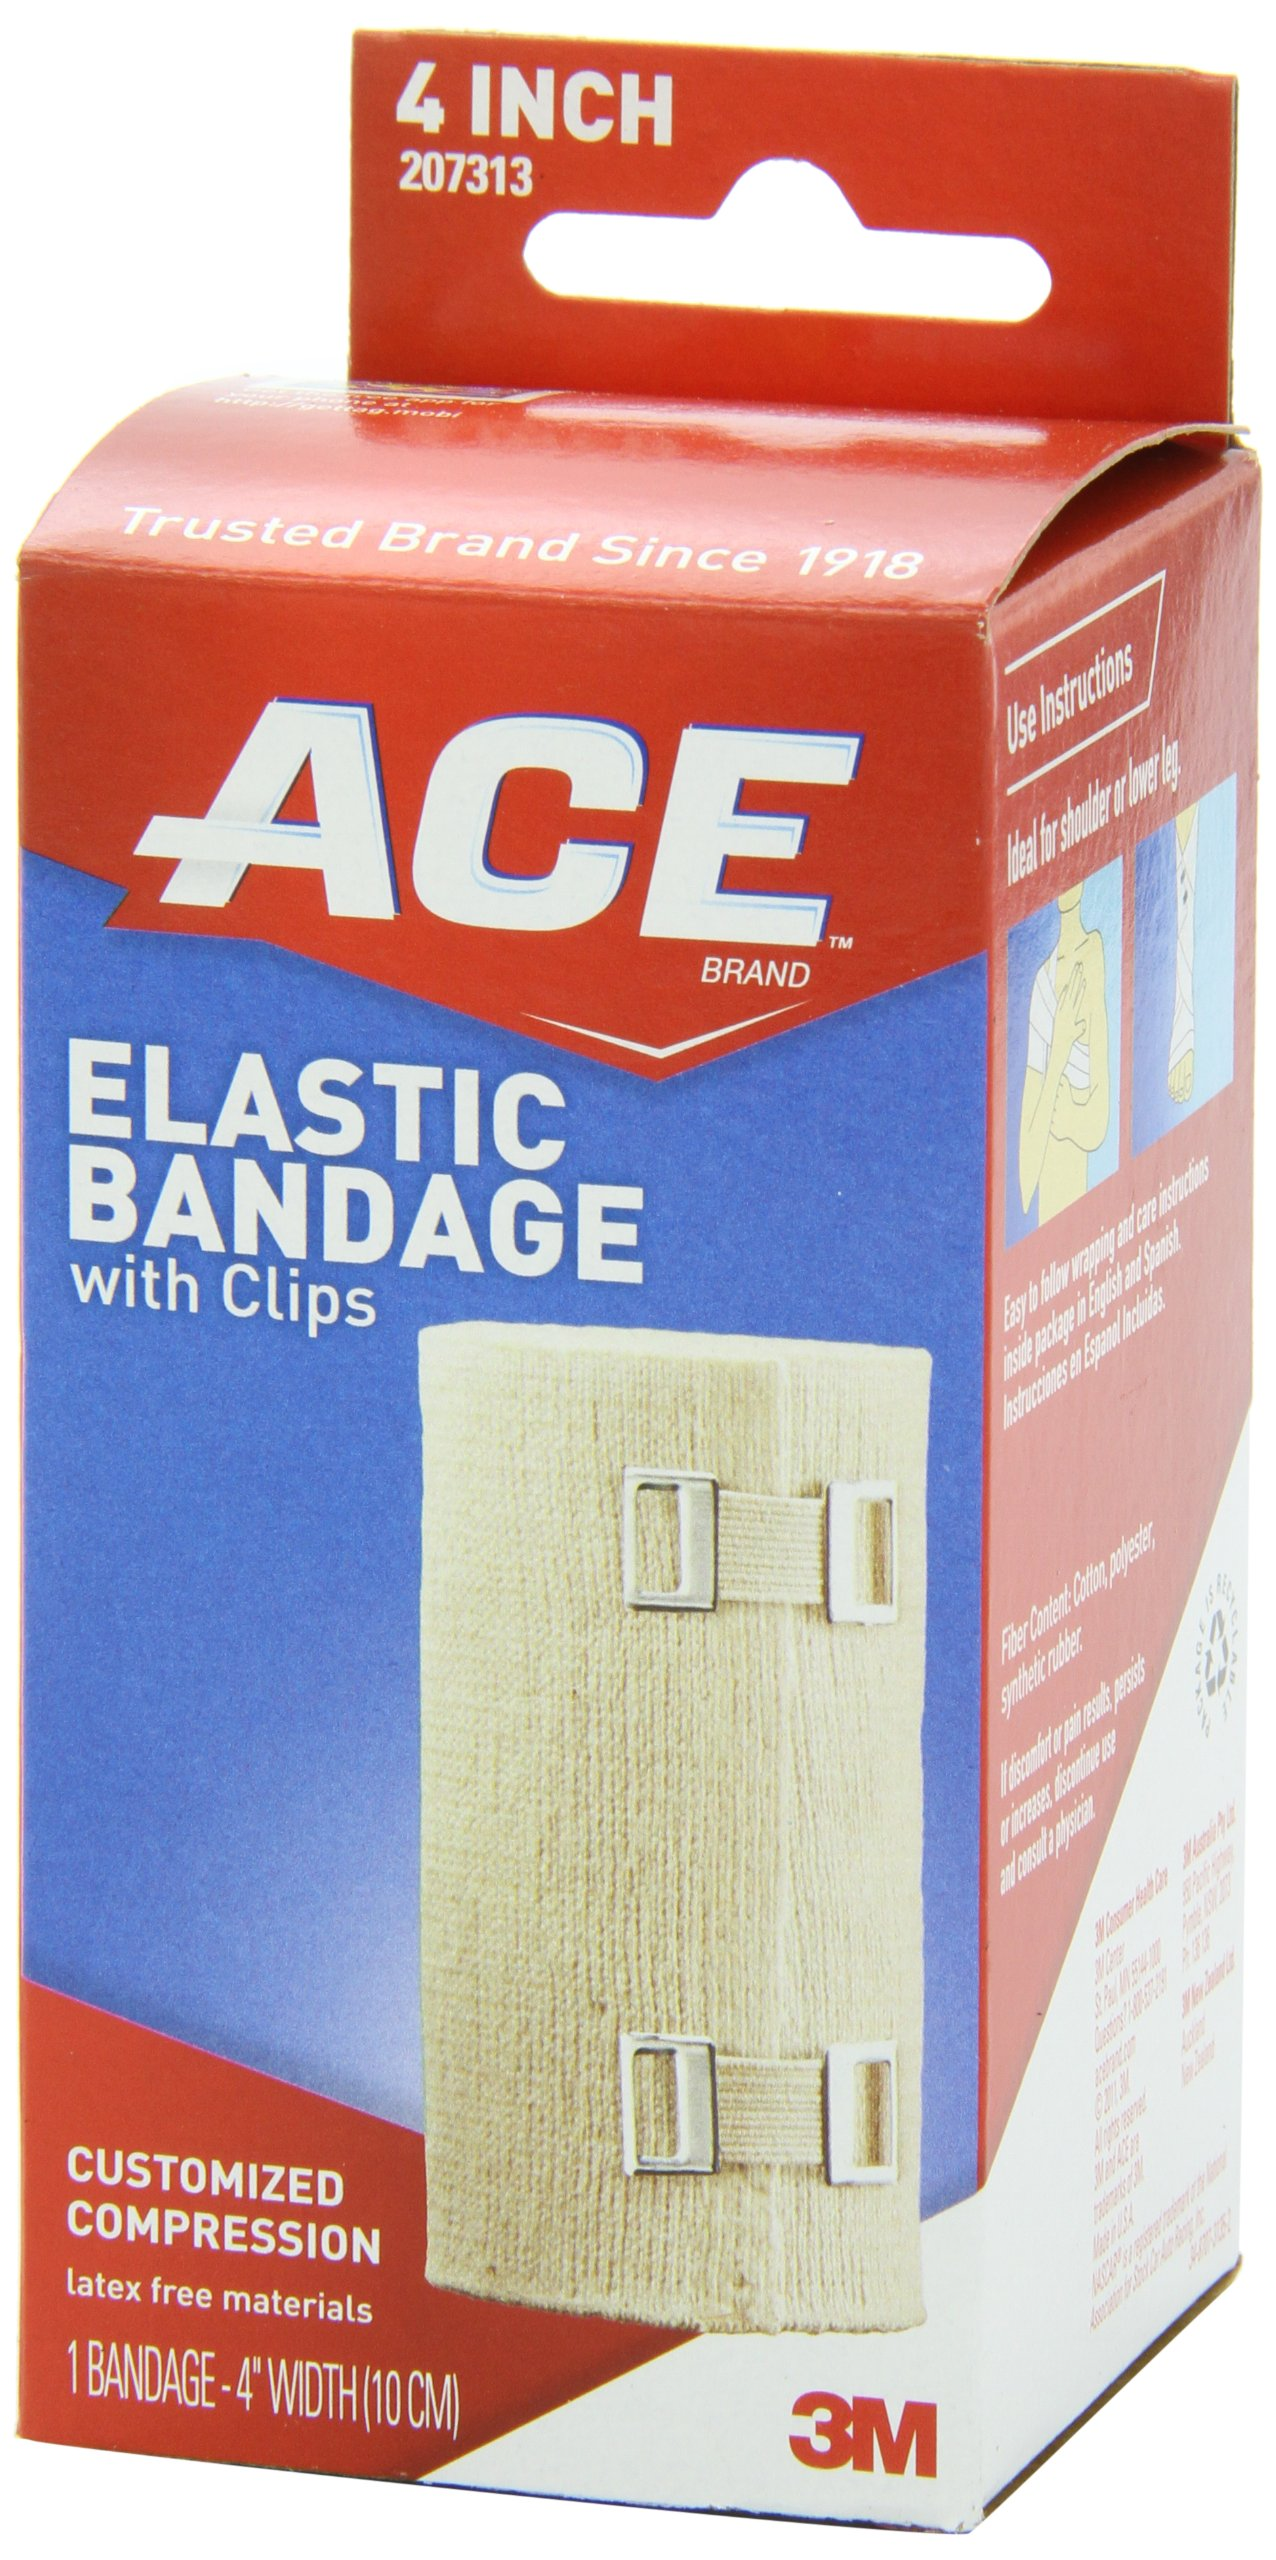 ACE Elastic Bandage with Clips, 4 Inches, 1-Count